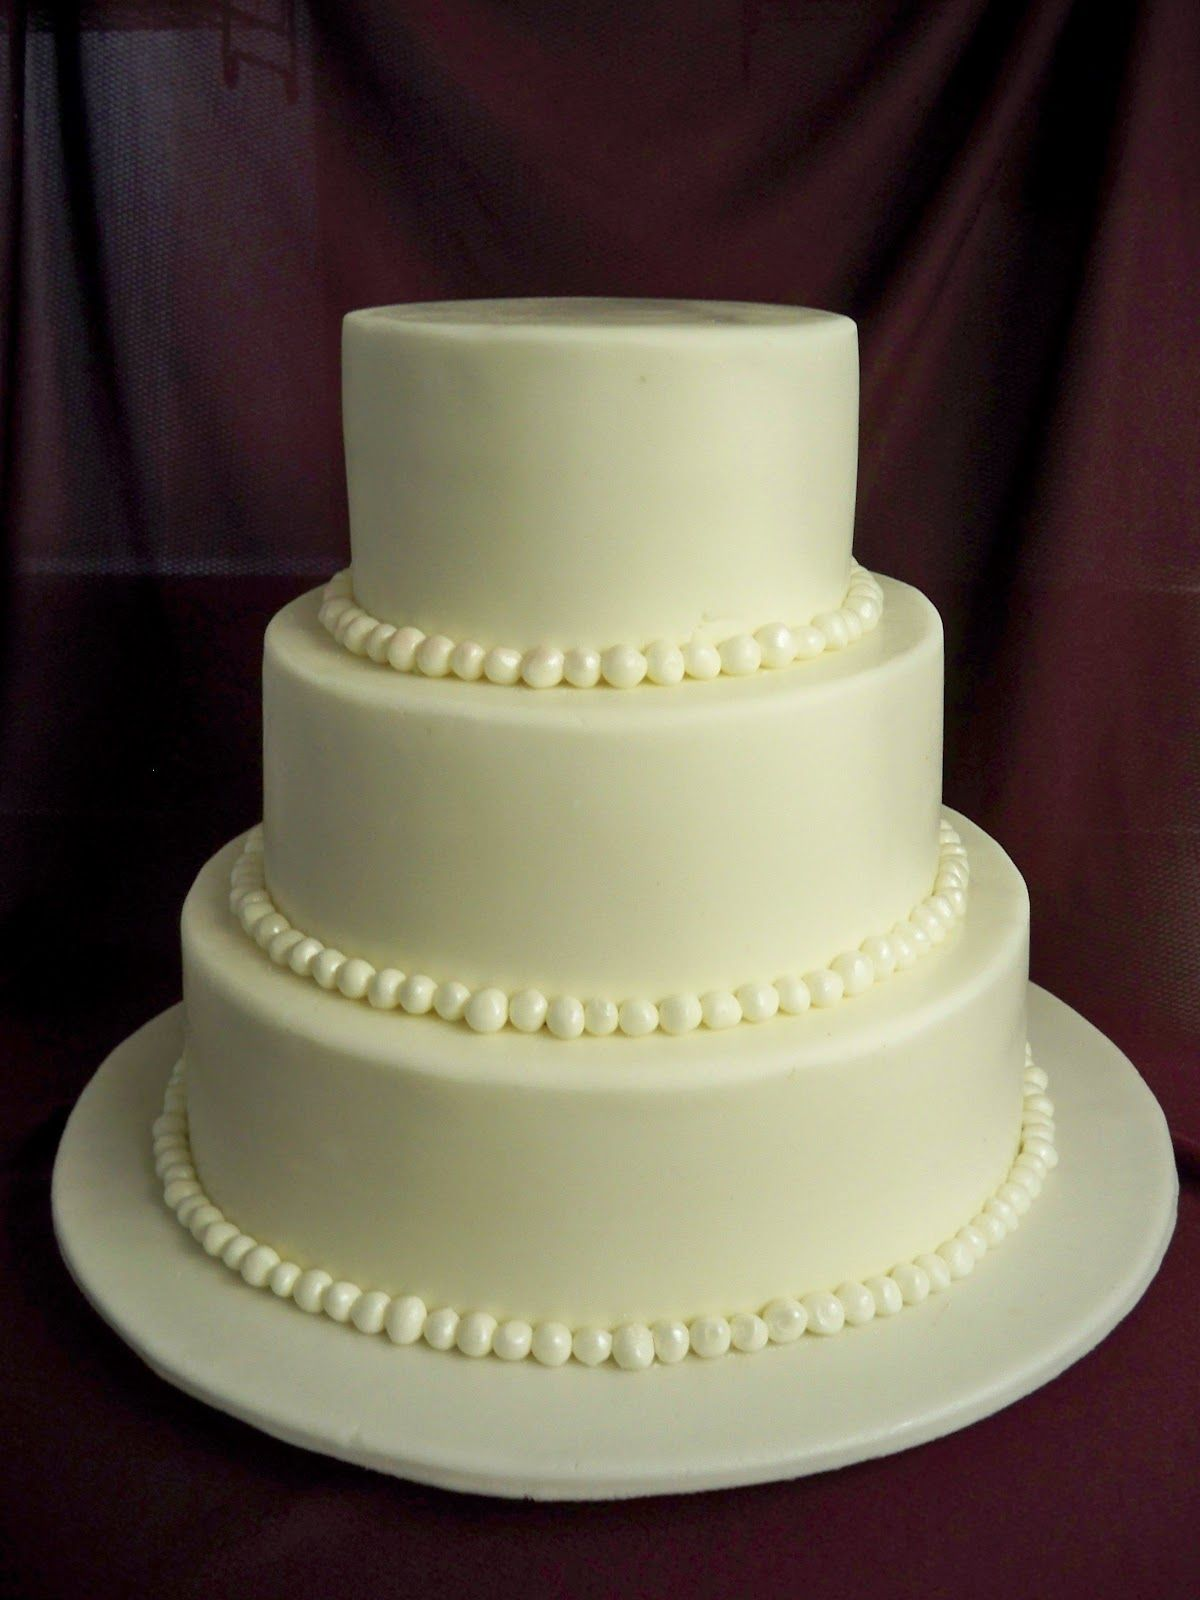 Four Separated Tier Wedding Cakes